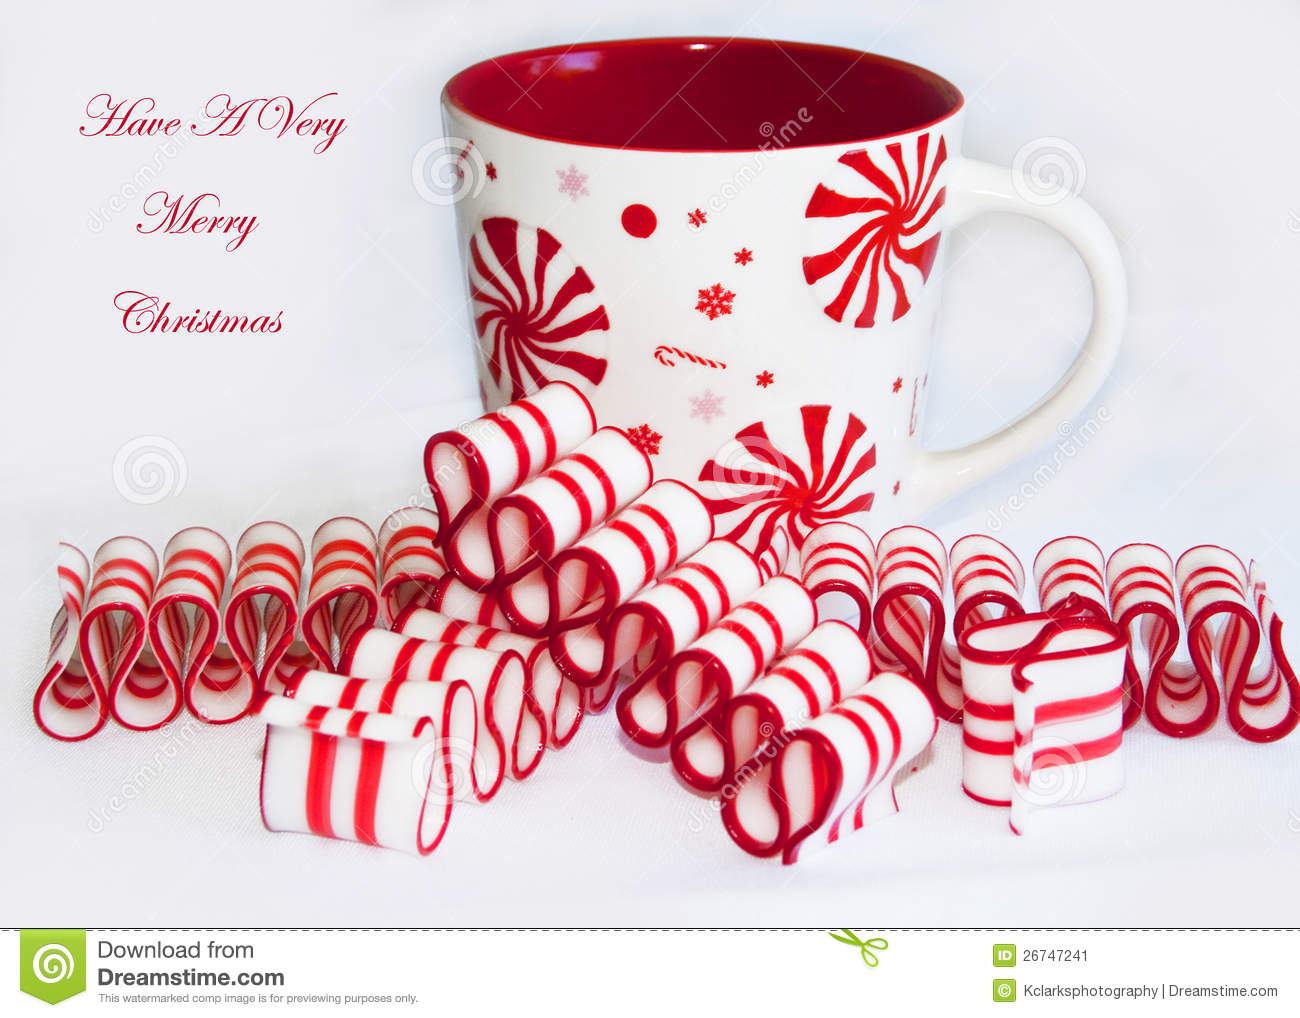 Have A Very Merry Christmas Stock Image - Image of merry, nostalgic ...